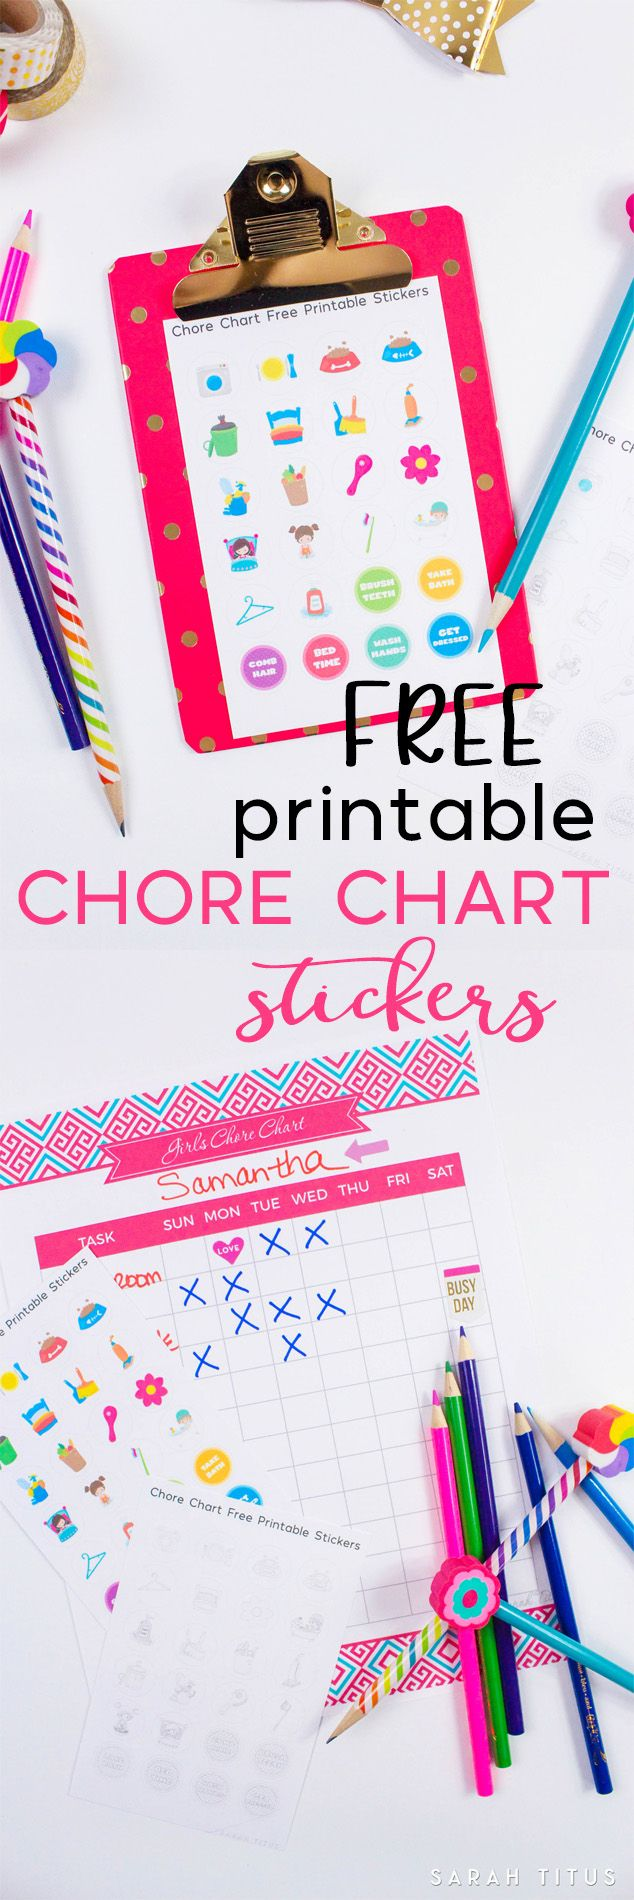 18300 Best Free Printables Images On Pinterest Free